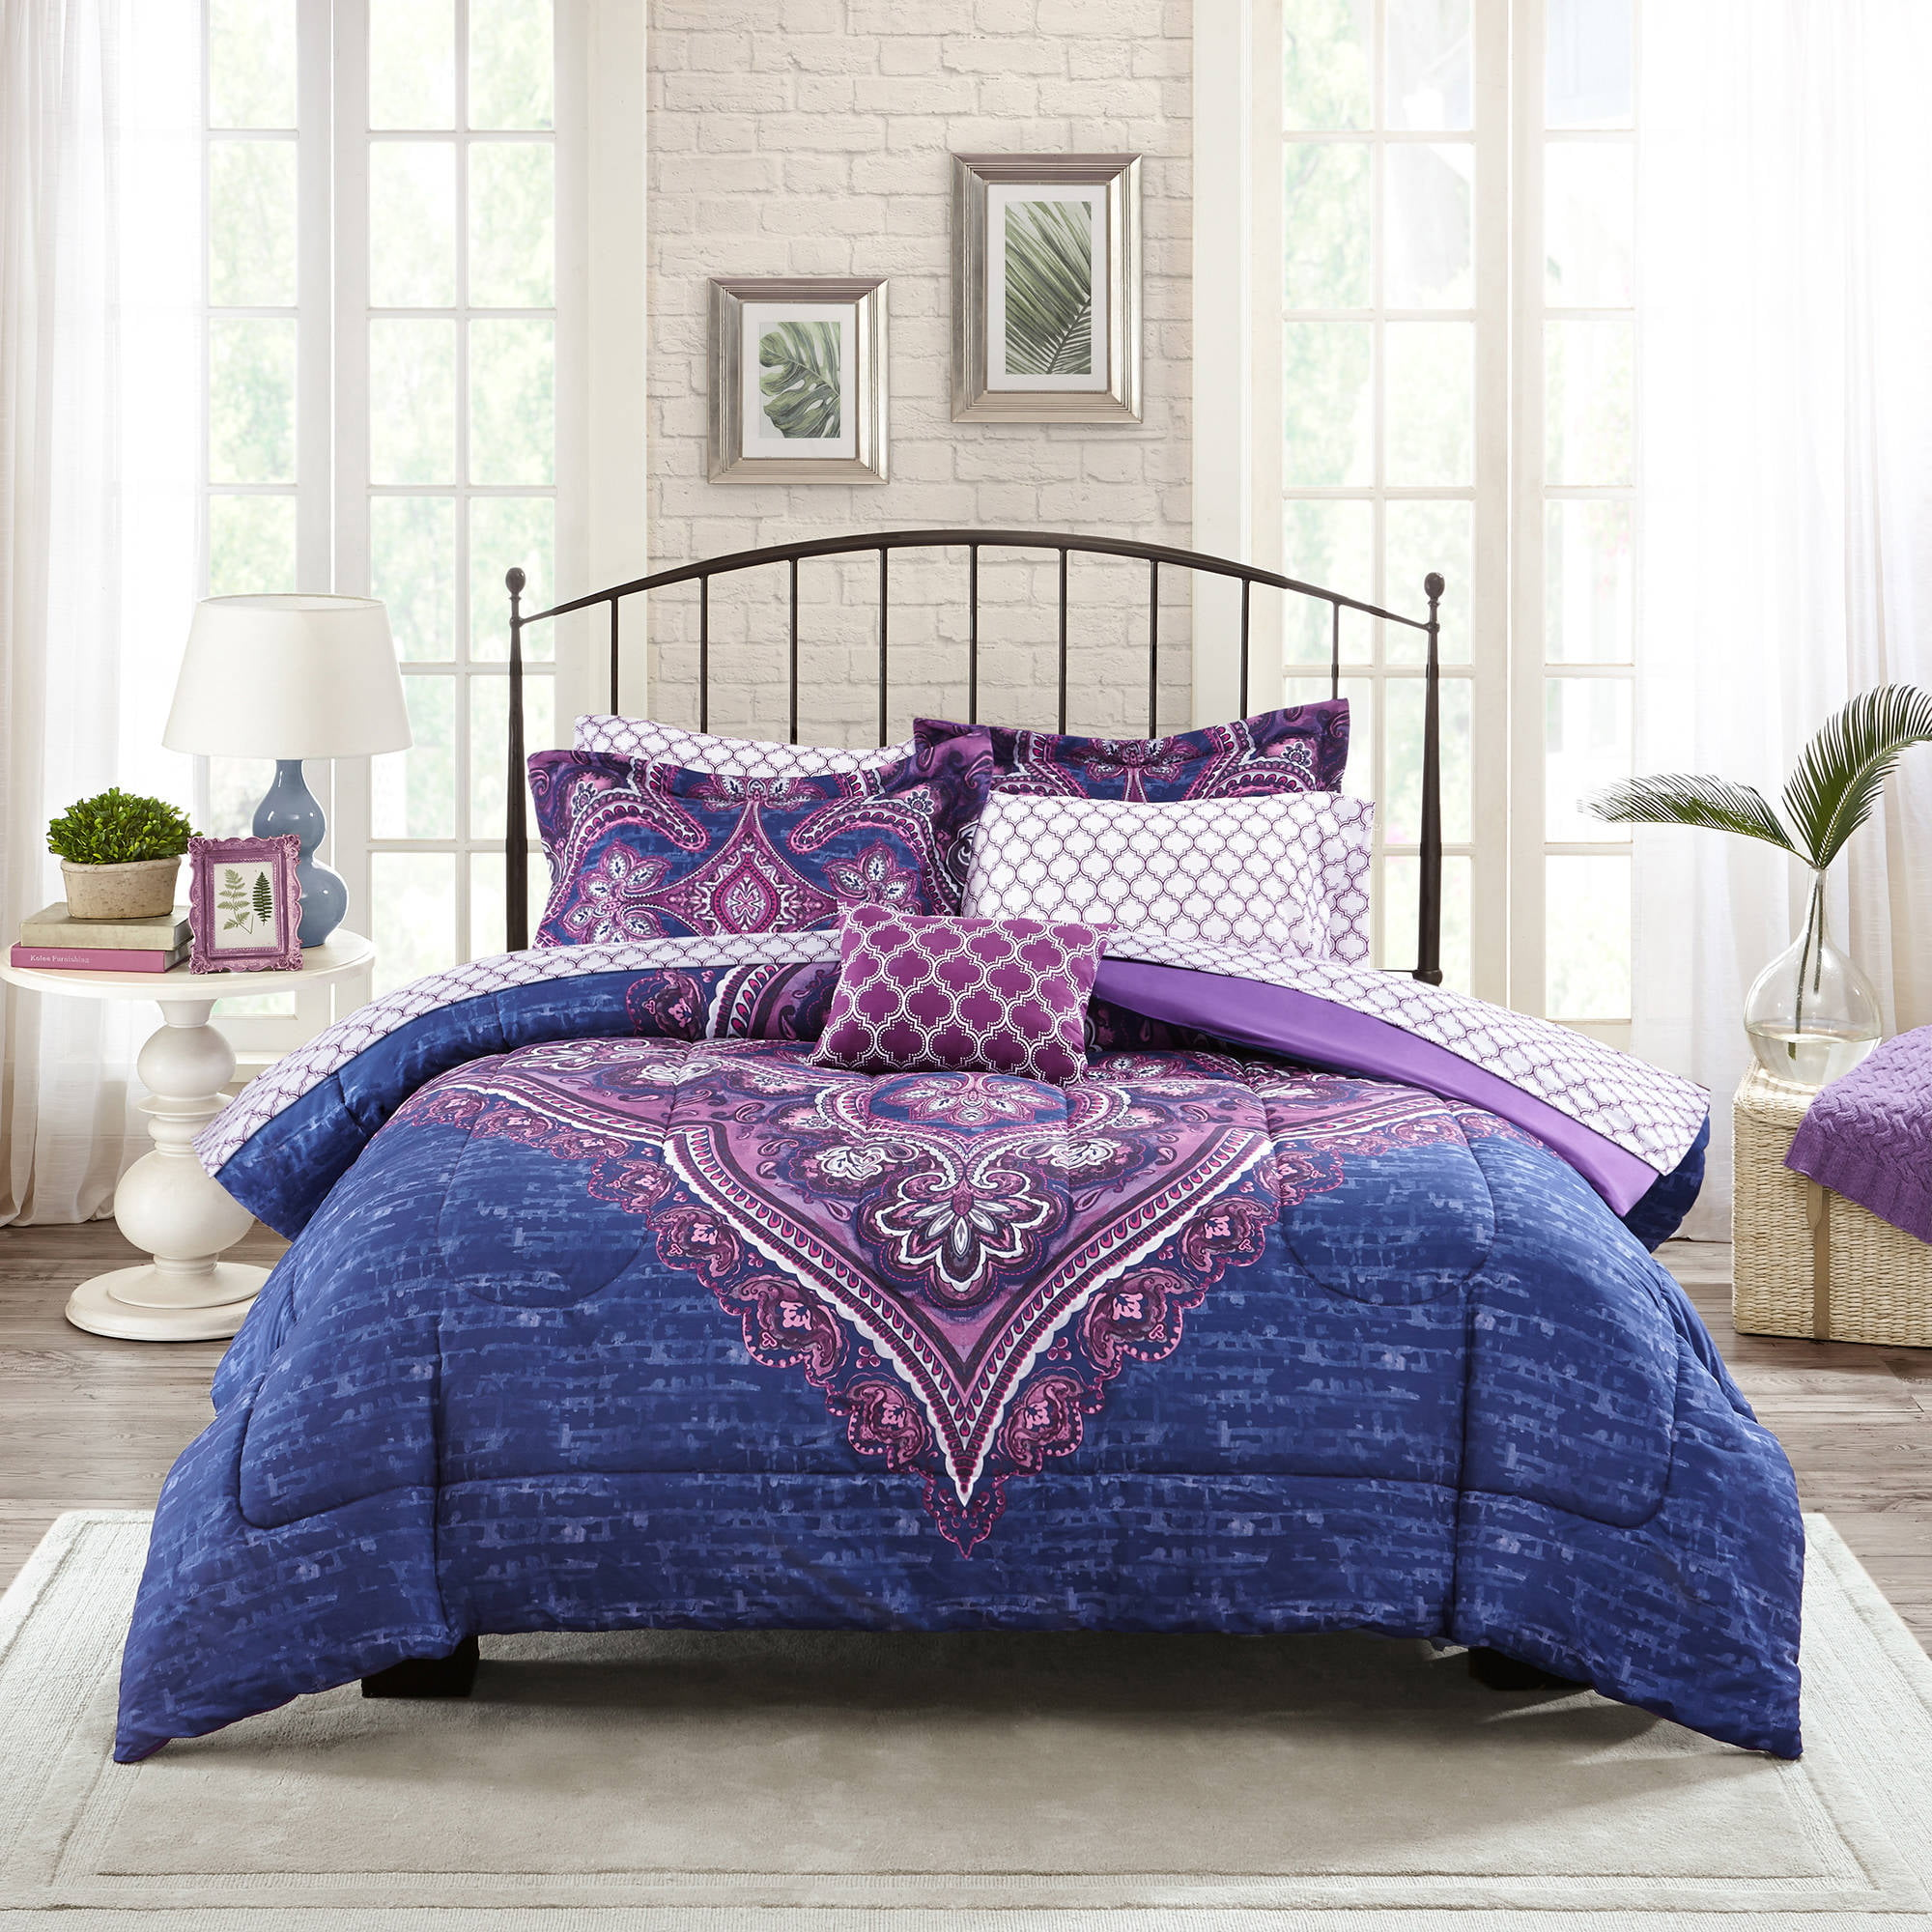 Bedroom Furniture For Teenagers teens' room - every day low prices | walmart